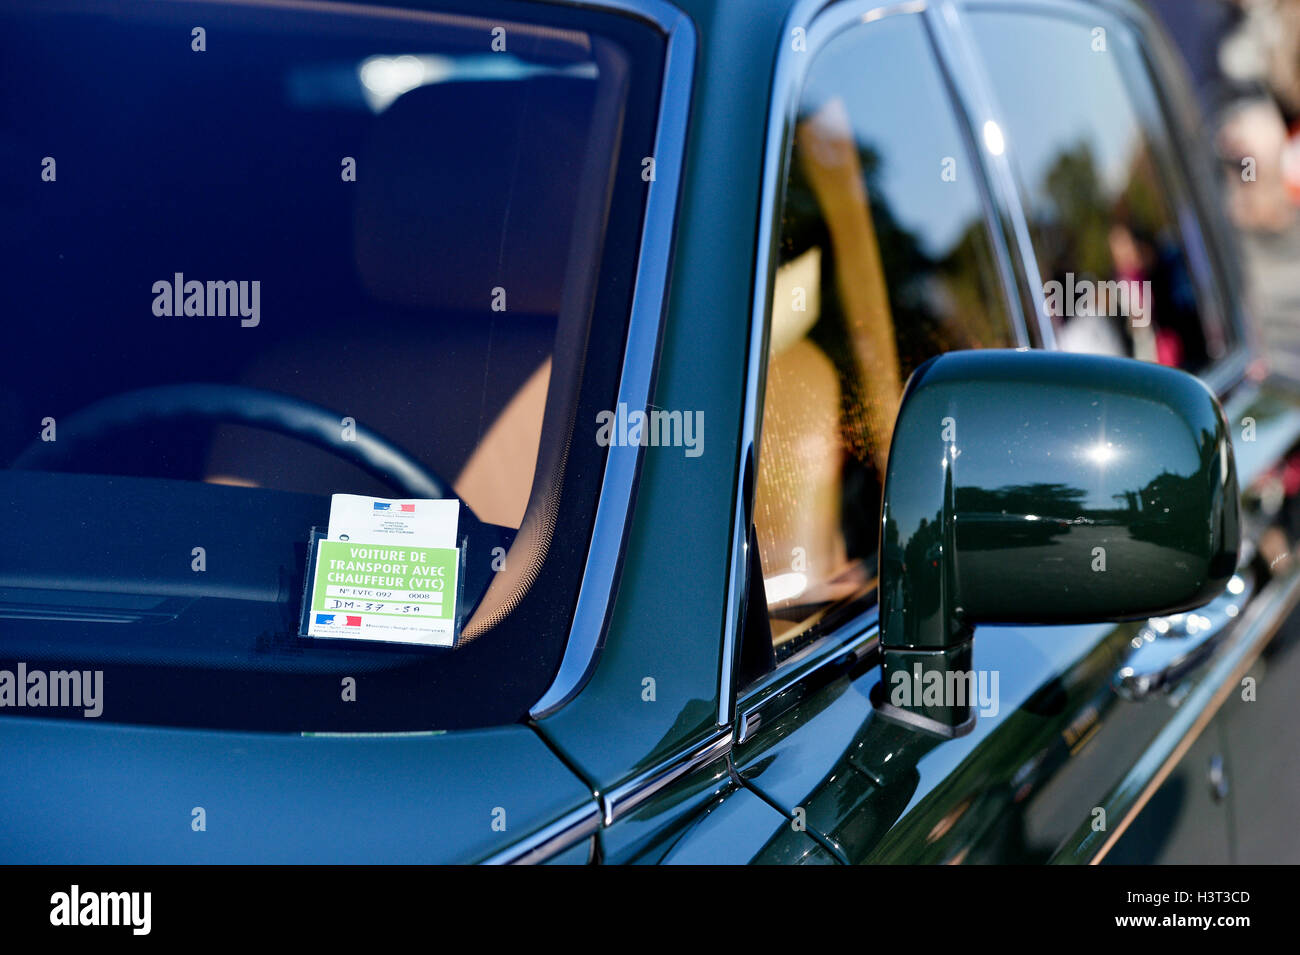 VTC licence on a car in Paris France - Stock Image